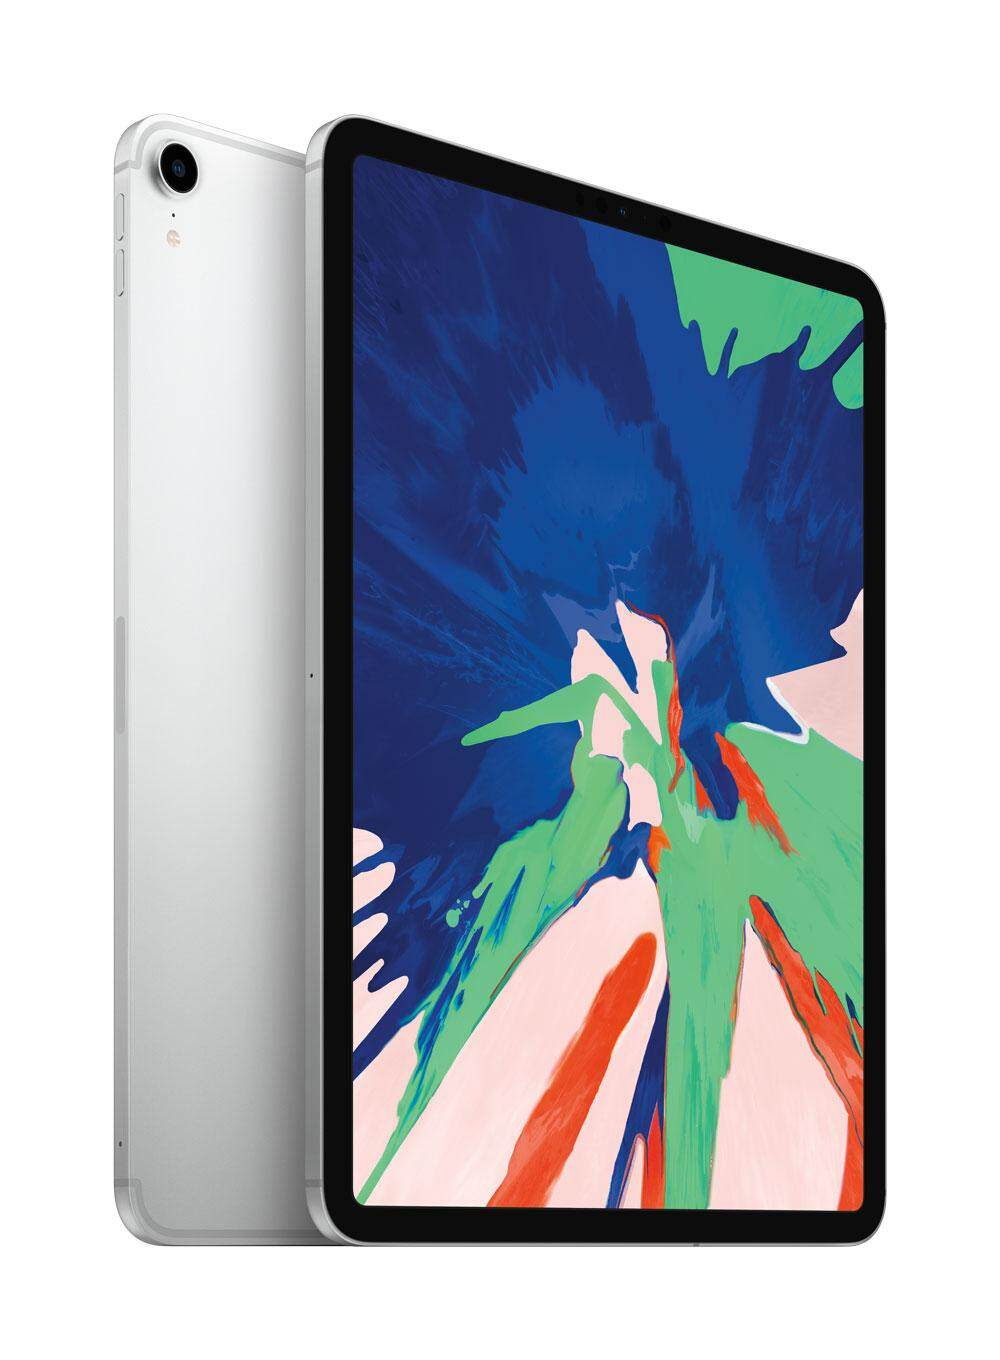 Apple Mobiles Tablets Price In Malaysia Best Ipad Pro 105 512gb New Gold Wifi Only 11 Inch 2018